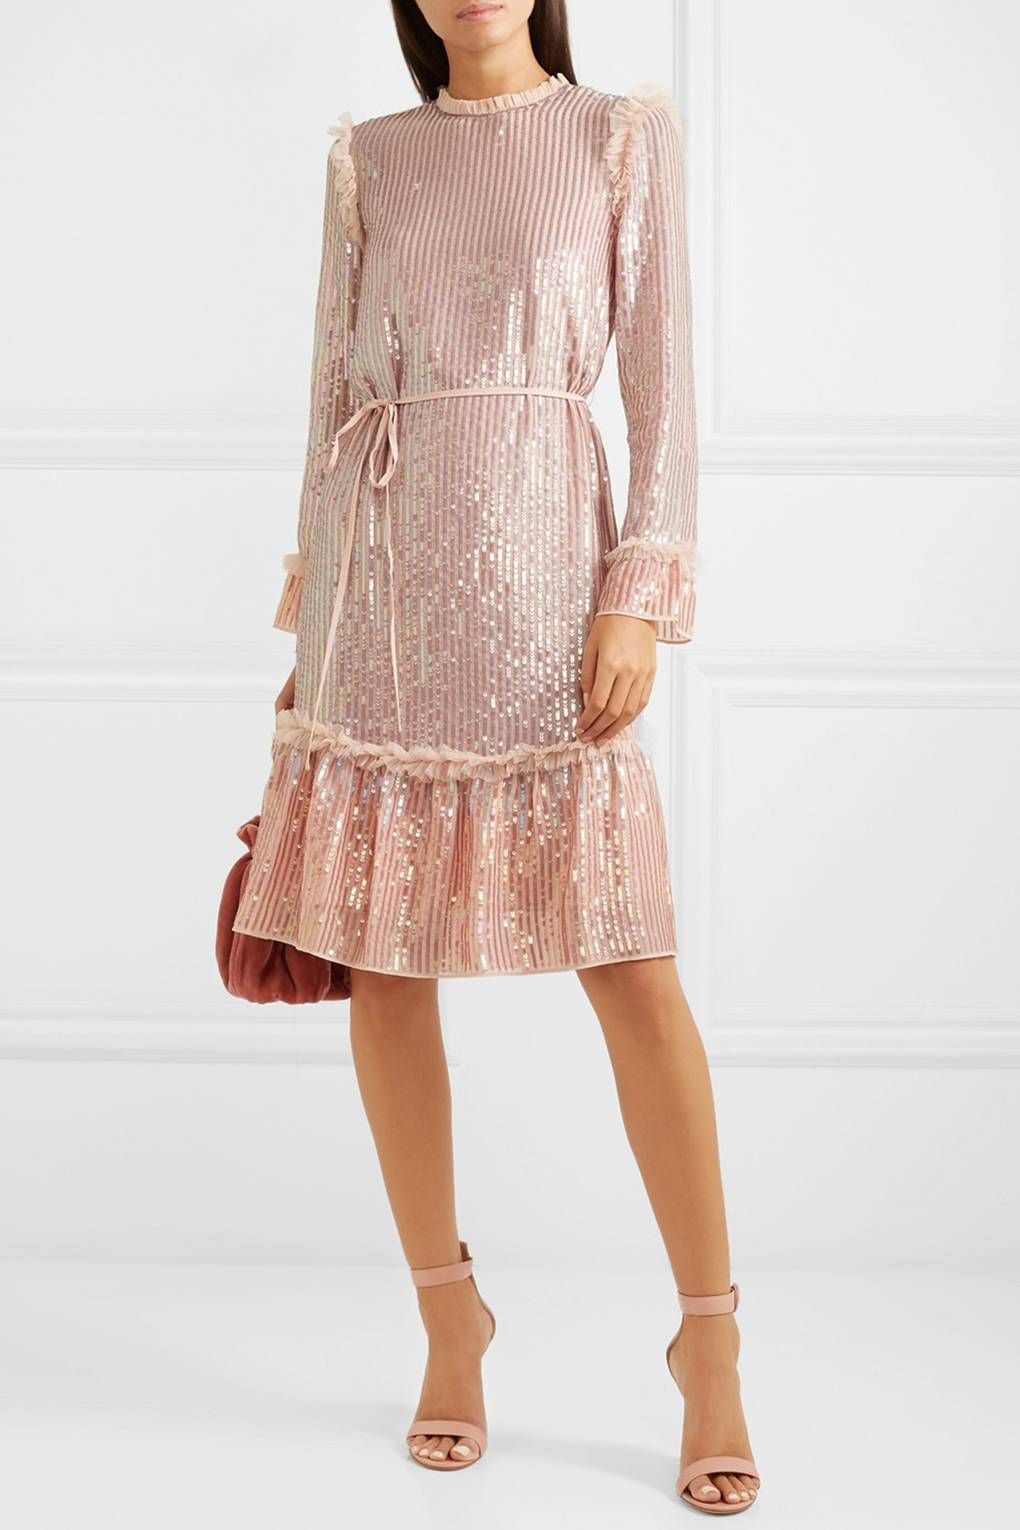 64a3fd1d87a Chic Spring Wedding Guest Dresses - What To Wear To A Wedding In 2019